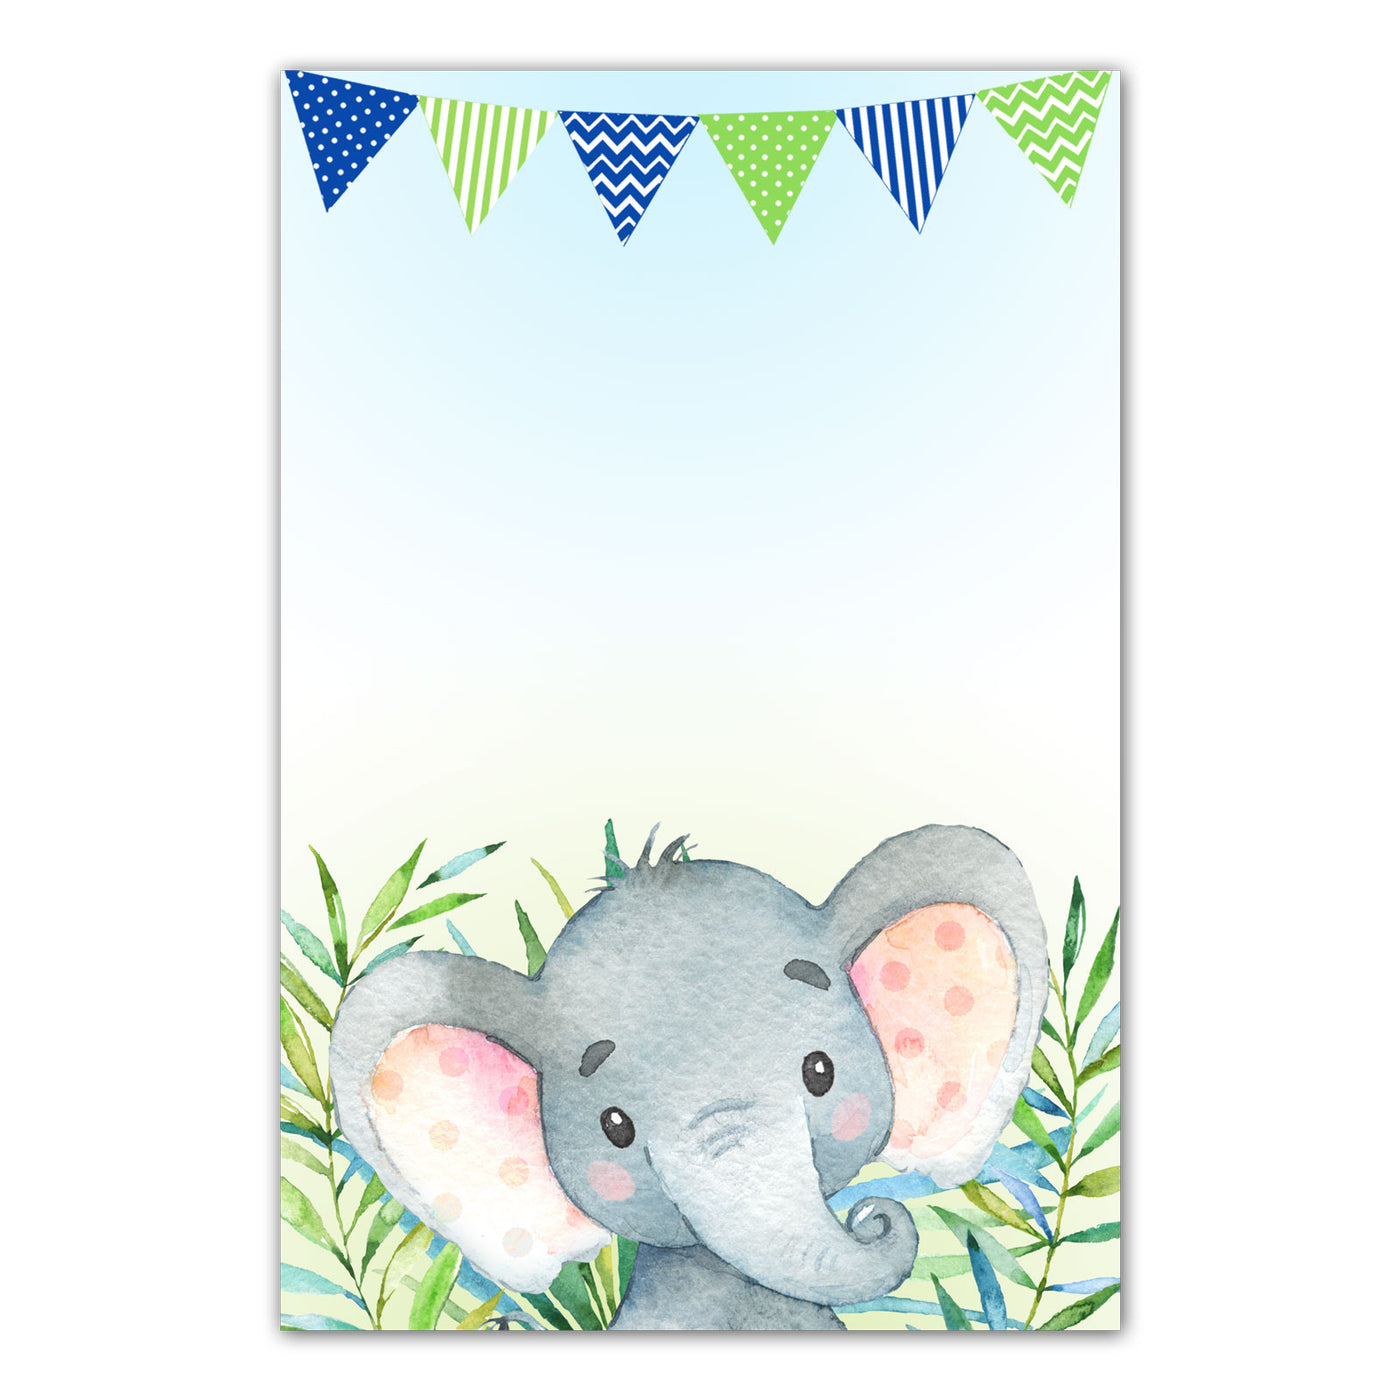 Thank You Cards Watercolor Elephant Birthday Bay Shower Printable Pink The Cat